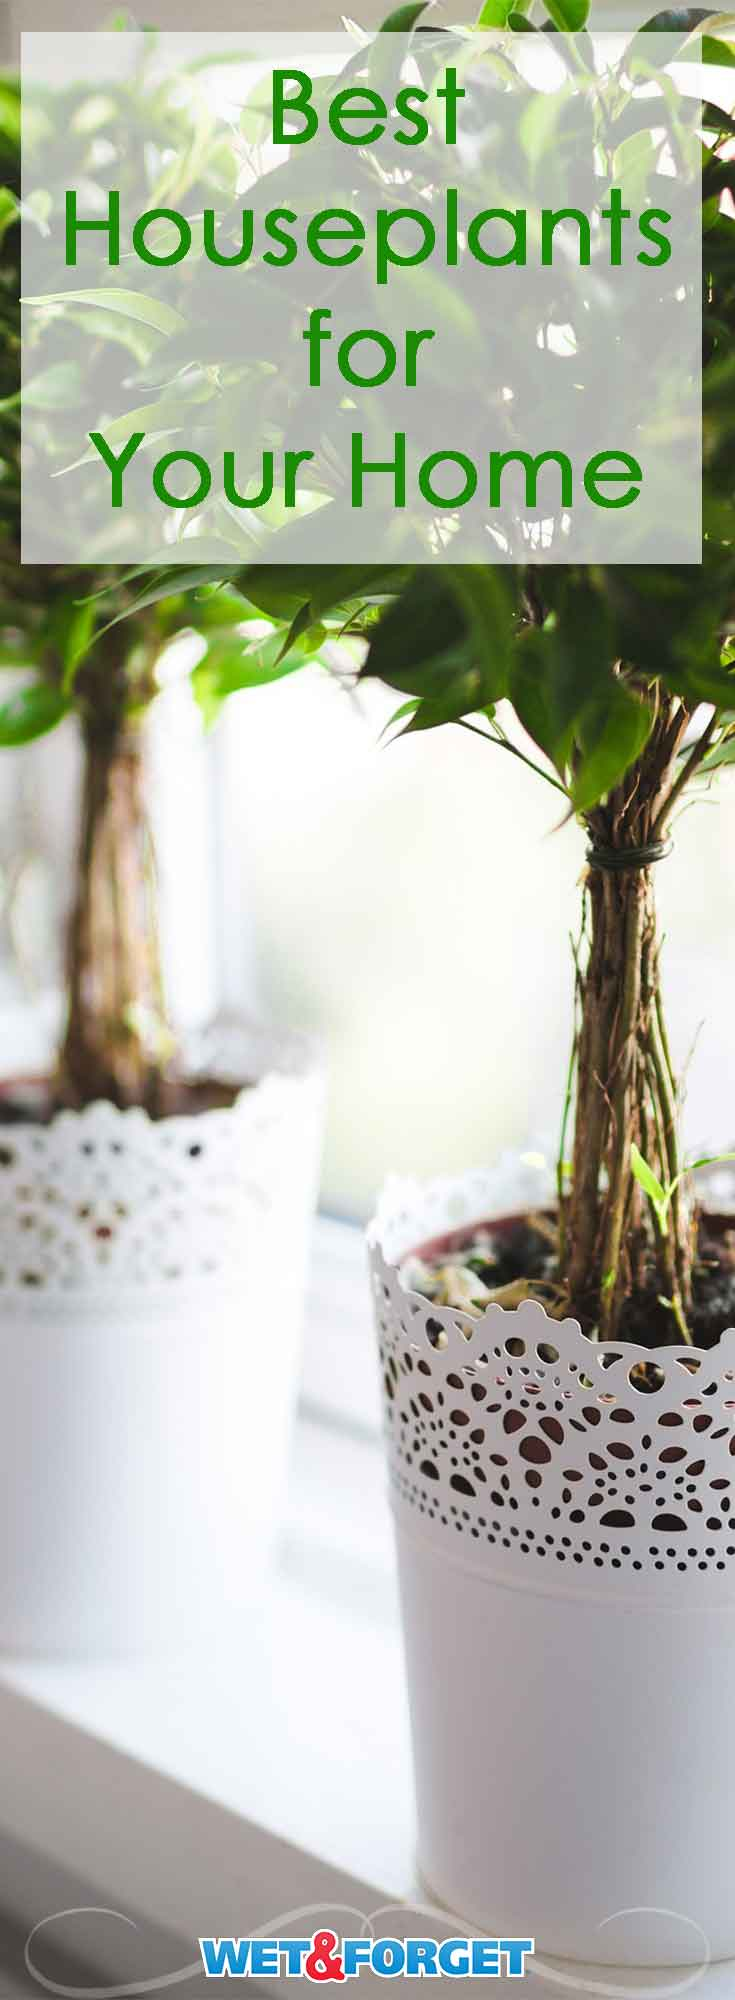 Houseplants not only beautify your home but cleanse the air! Discover which houseplant suits your home the best with our easy to follow guide!